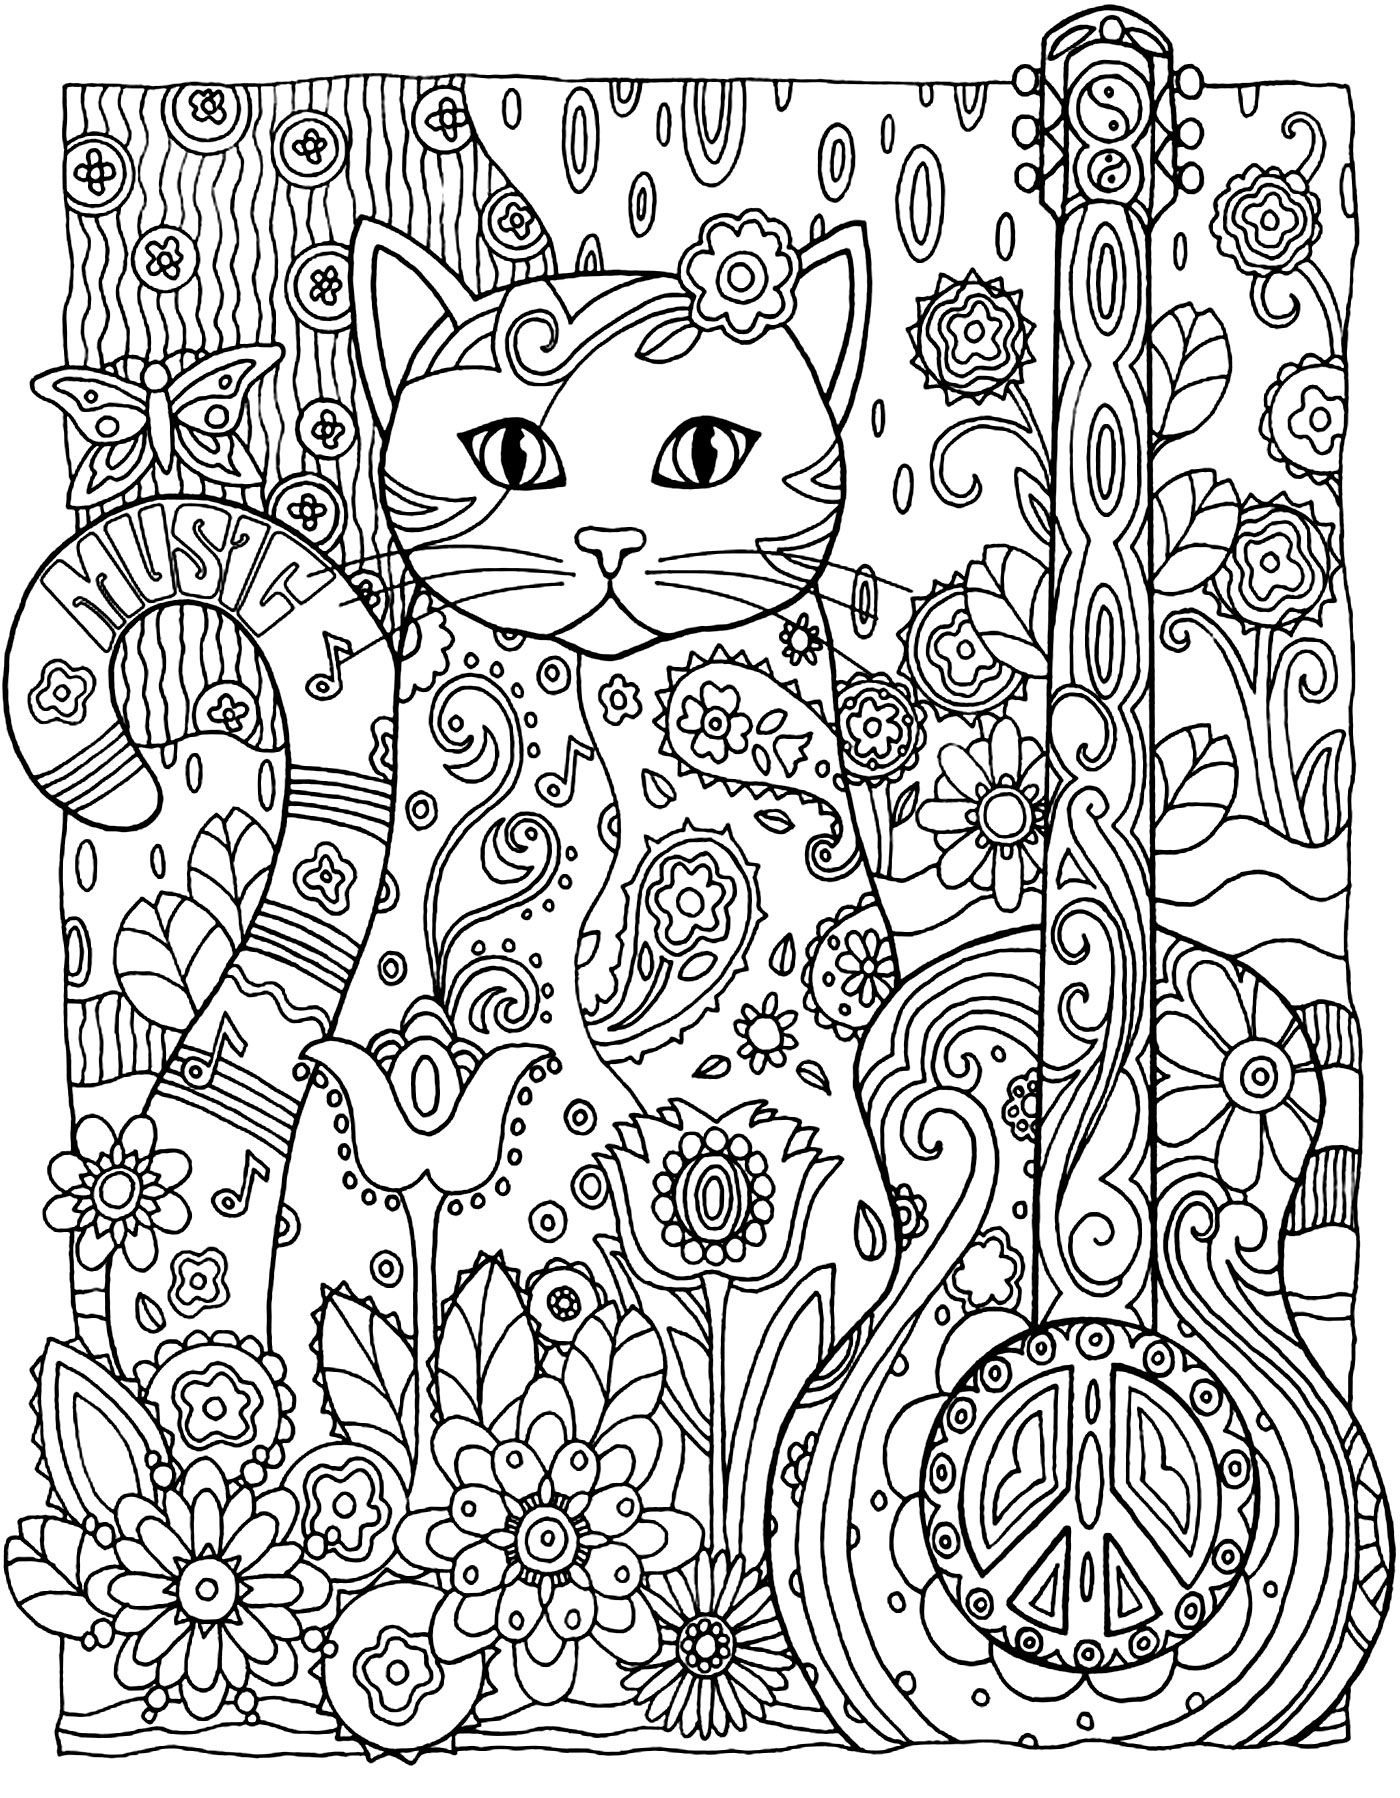 Coloring pages for adults cute - To Print This Free Coloring Page Coloring Adult Cat Guitar